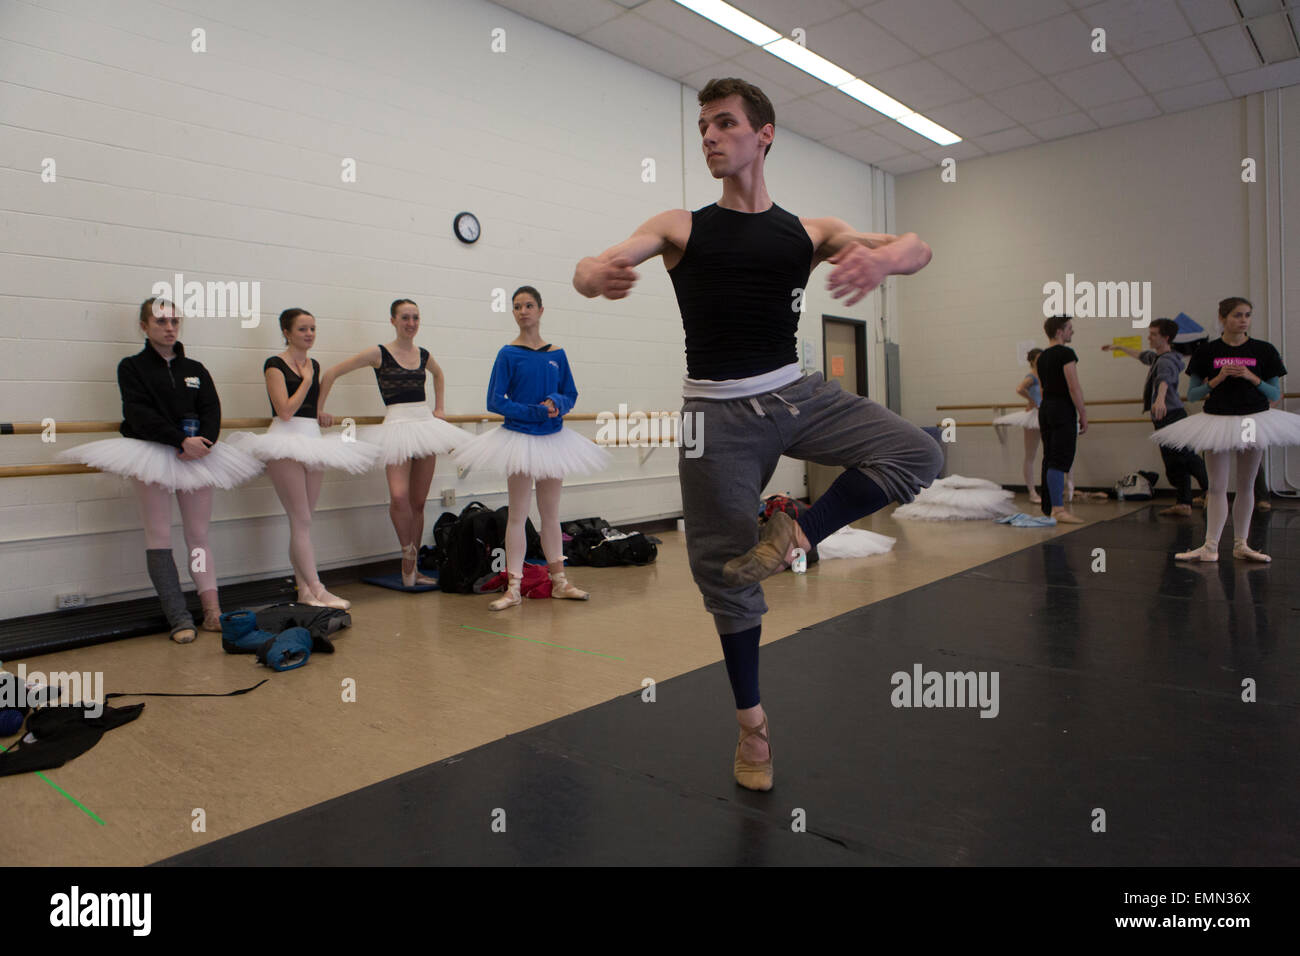 ballet dancers are training in Banff cultural center, Canada - Stock Image